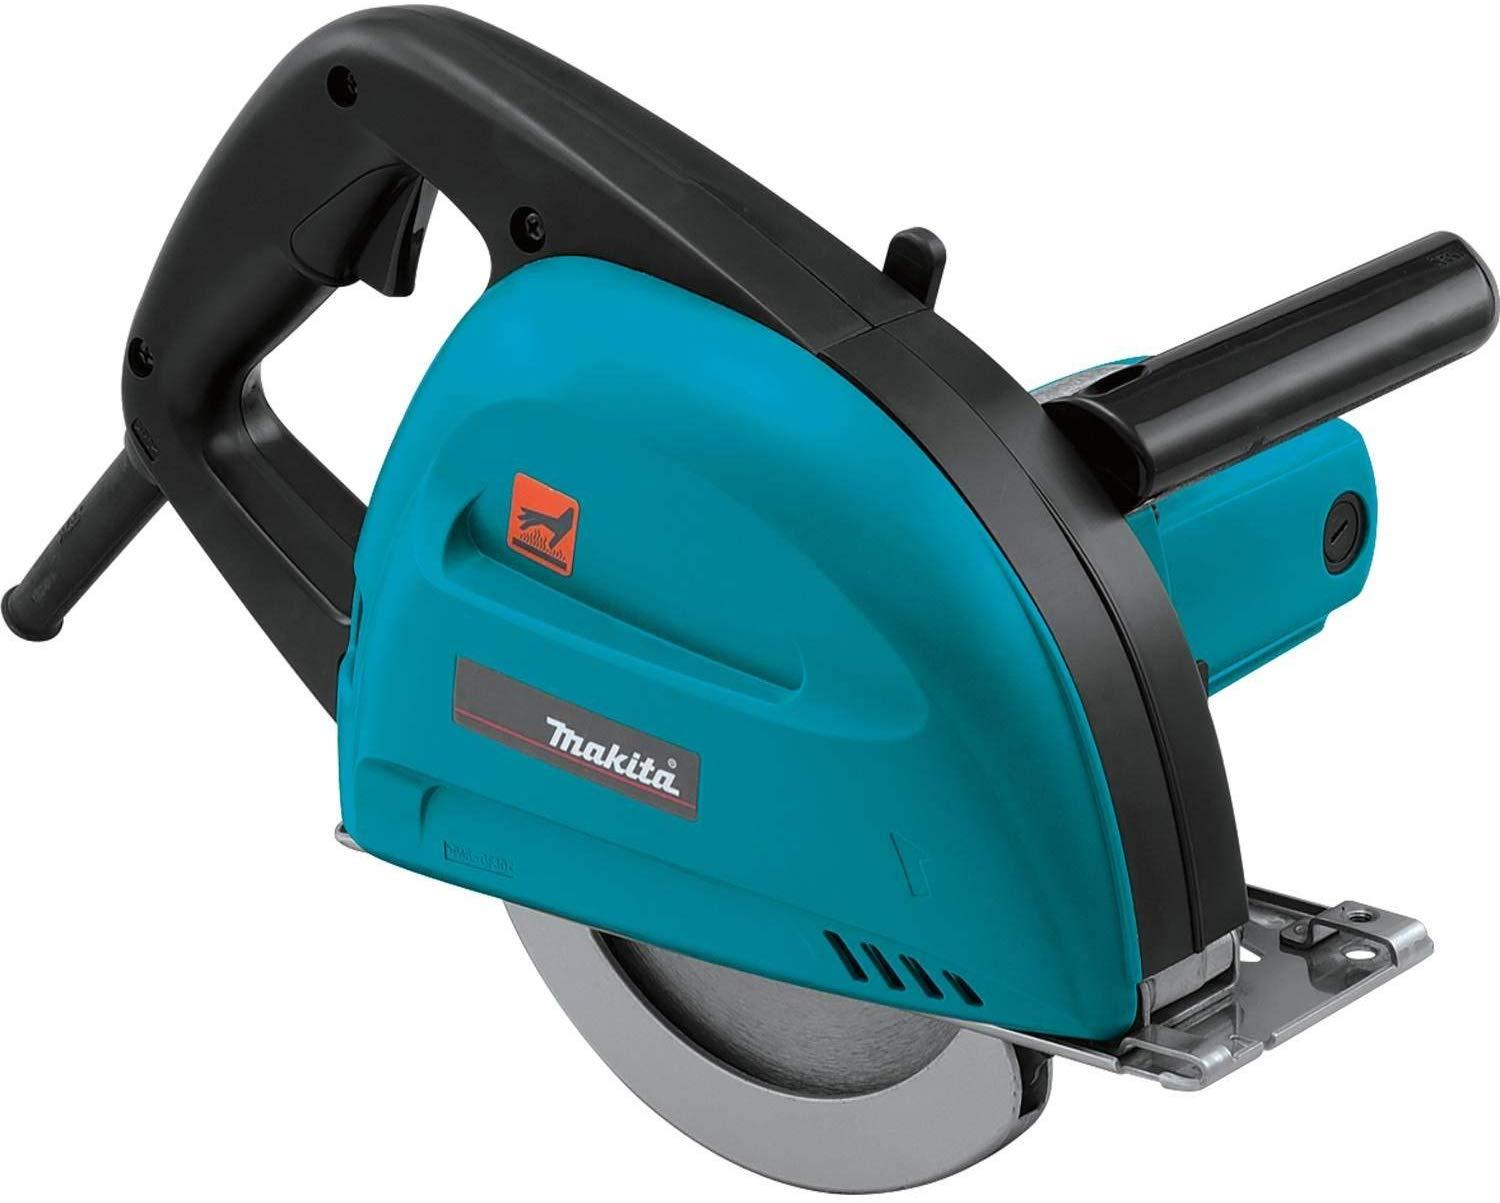 Makita 4131 Metal Circular Saw - Metal Cutting Tool